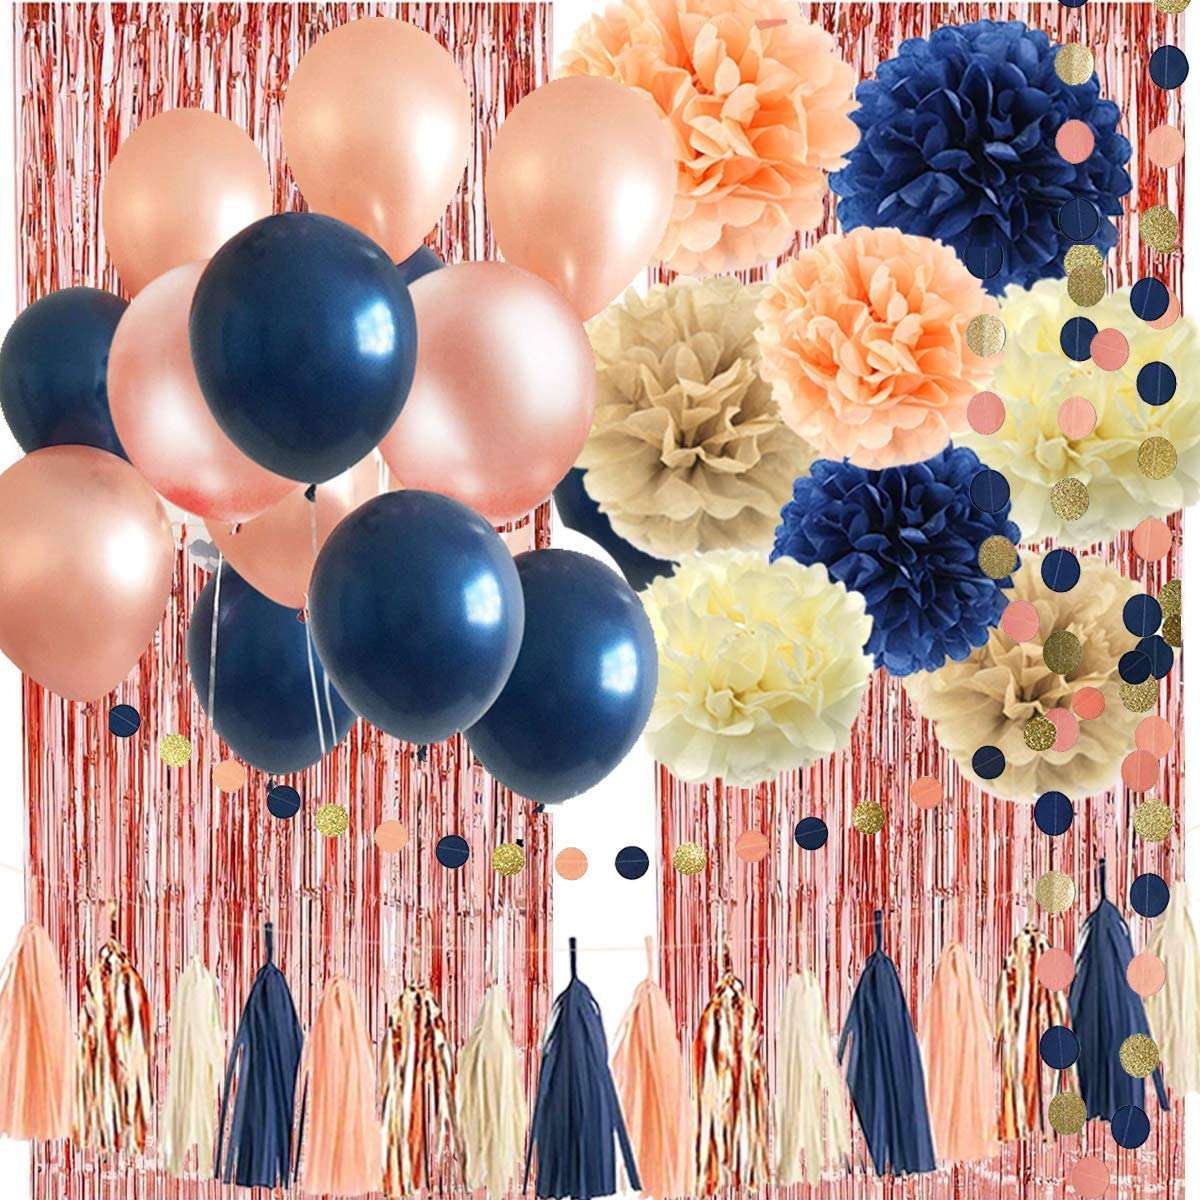 32 Pack Navy Blue Rose Gold Party Decoration Kit - Navy Rose Gold Balloons, Curtains, Paper Flowers,Tassel and Garland for Bridal Shower, Baby Shower, Gender Reveal, Graduation, Rose Gold Bachelorette Party Decorations: Toys & Games